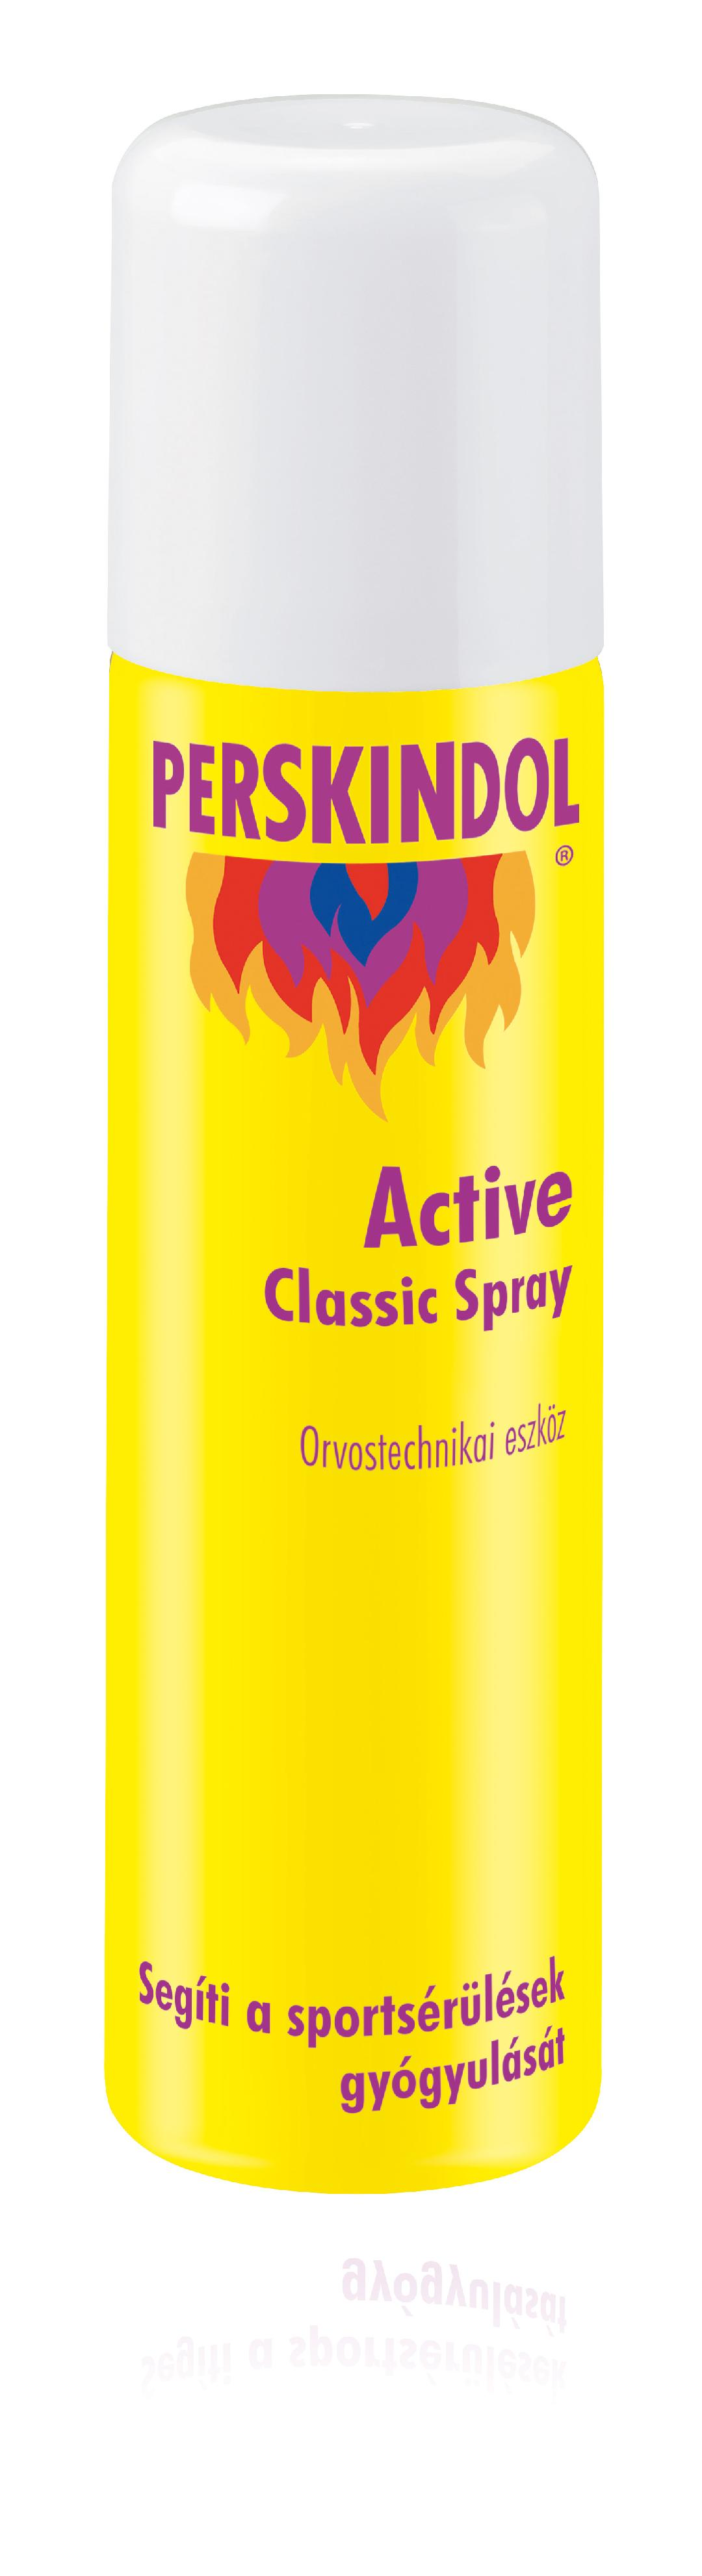 Perskindol Active Classic spray